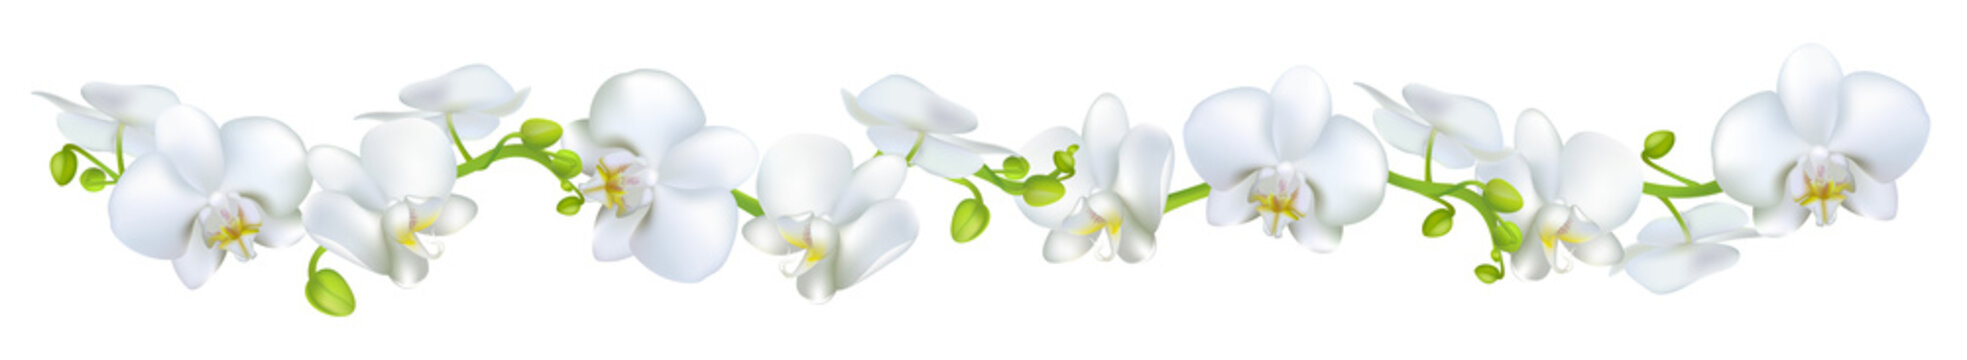 Orchids. Flowers. White. Tropical plants. Isolated. Floral background. Horizontal pattern.